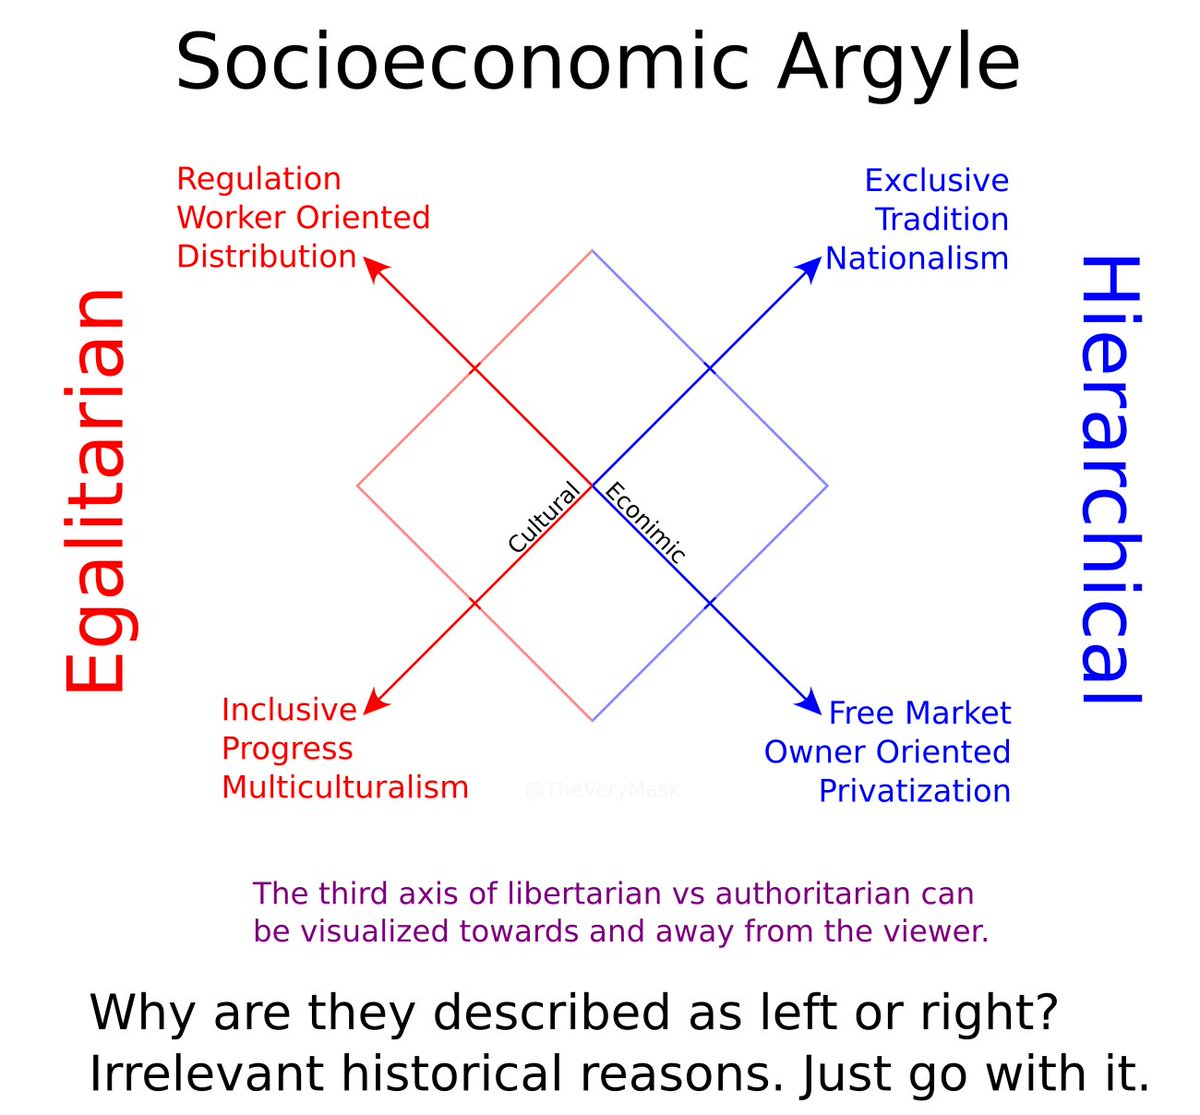 The Socioeconomic Argyle to distinguish the left/right divide as I understand it. Revised. #politicalcompass #politicspic.twitter.com/qJTwJye1Bj